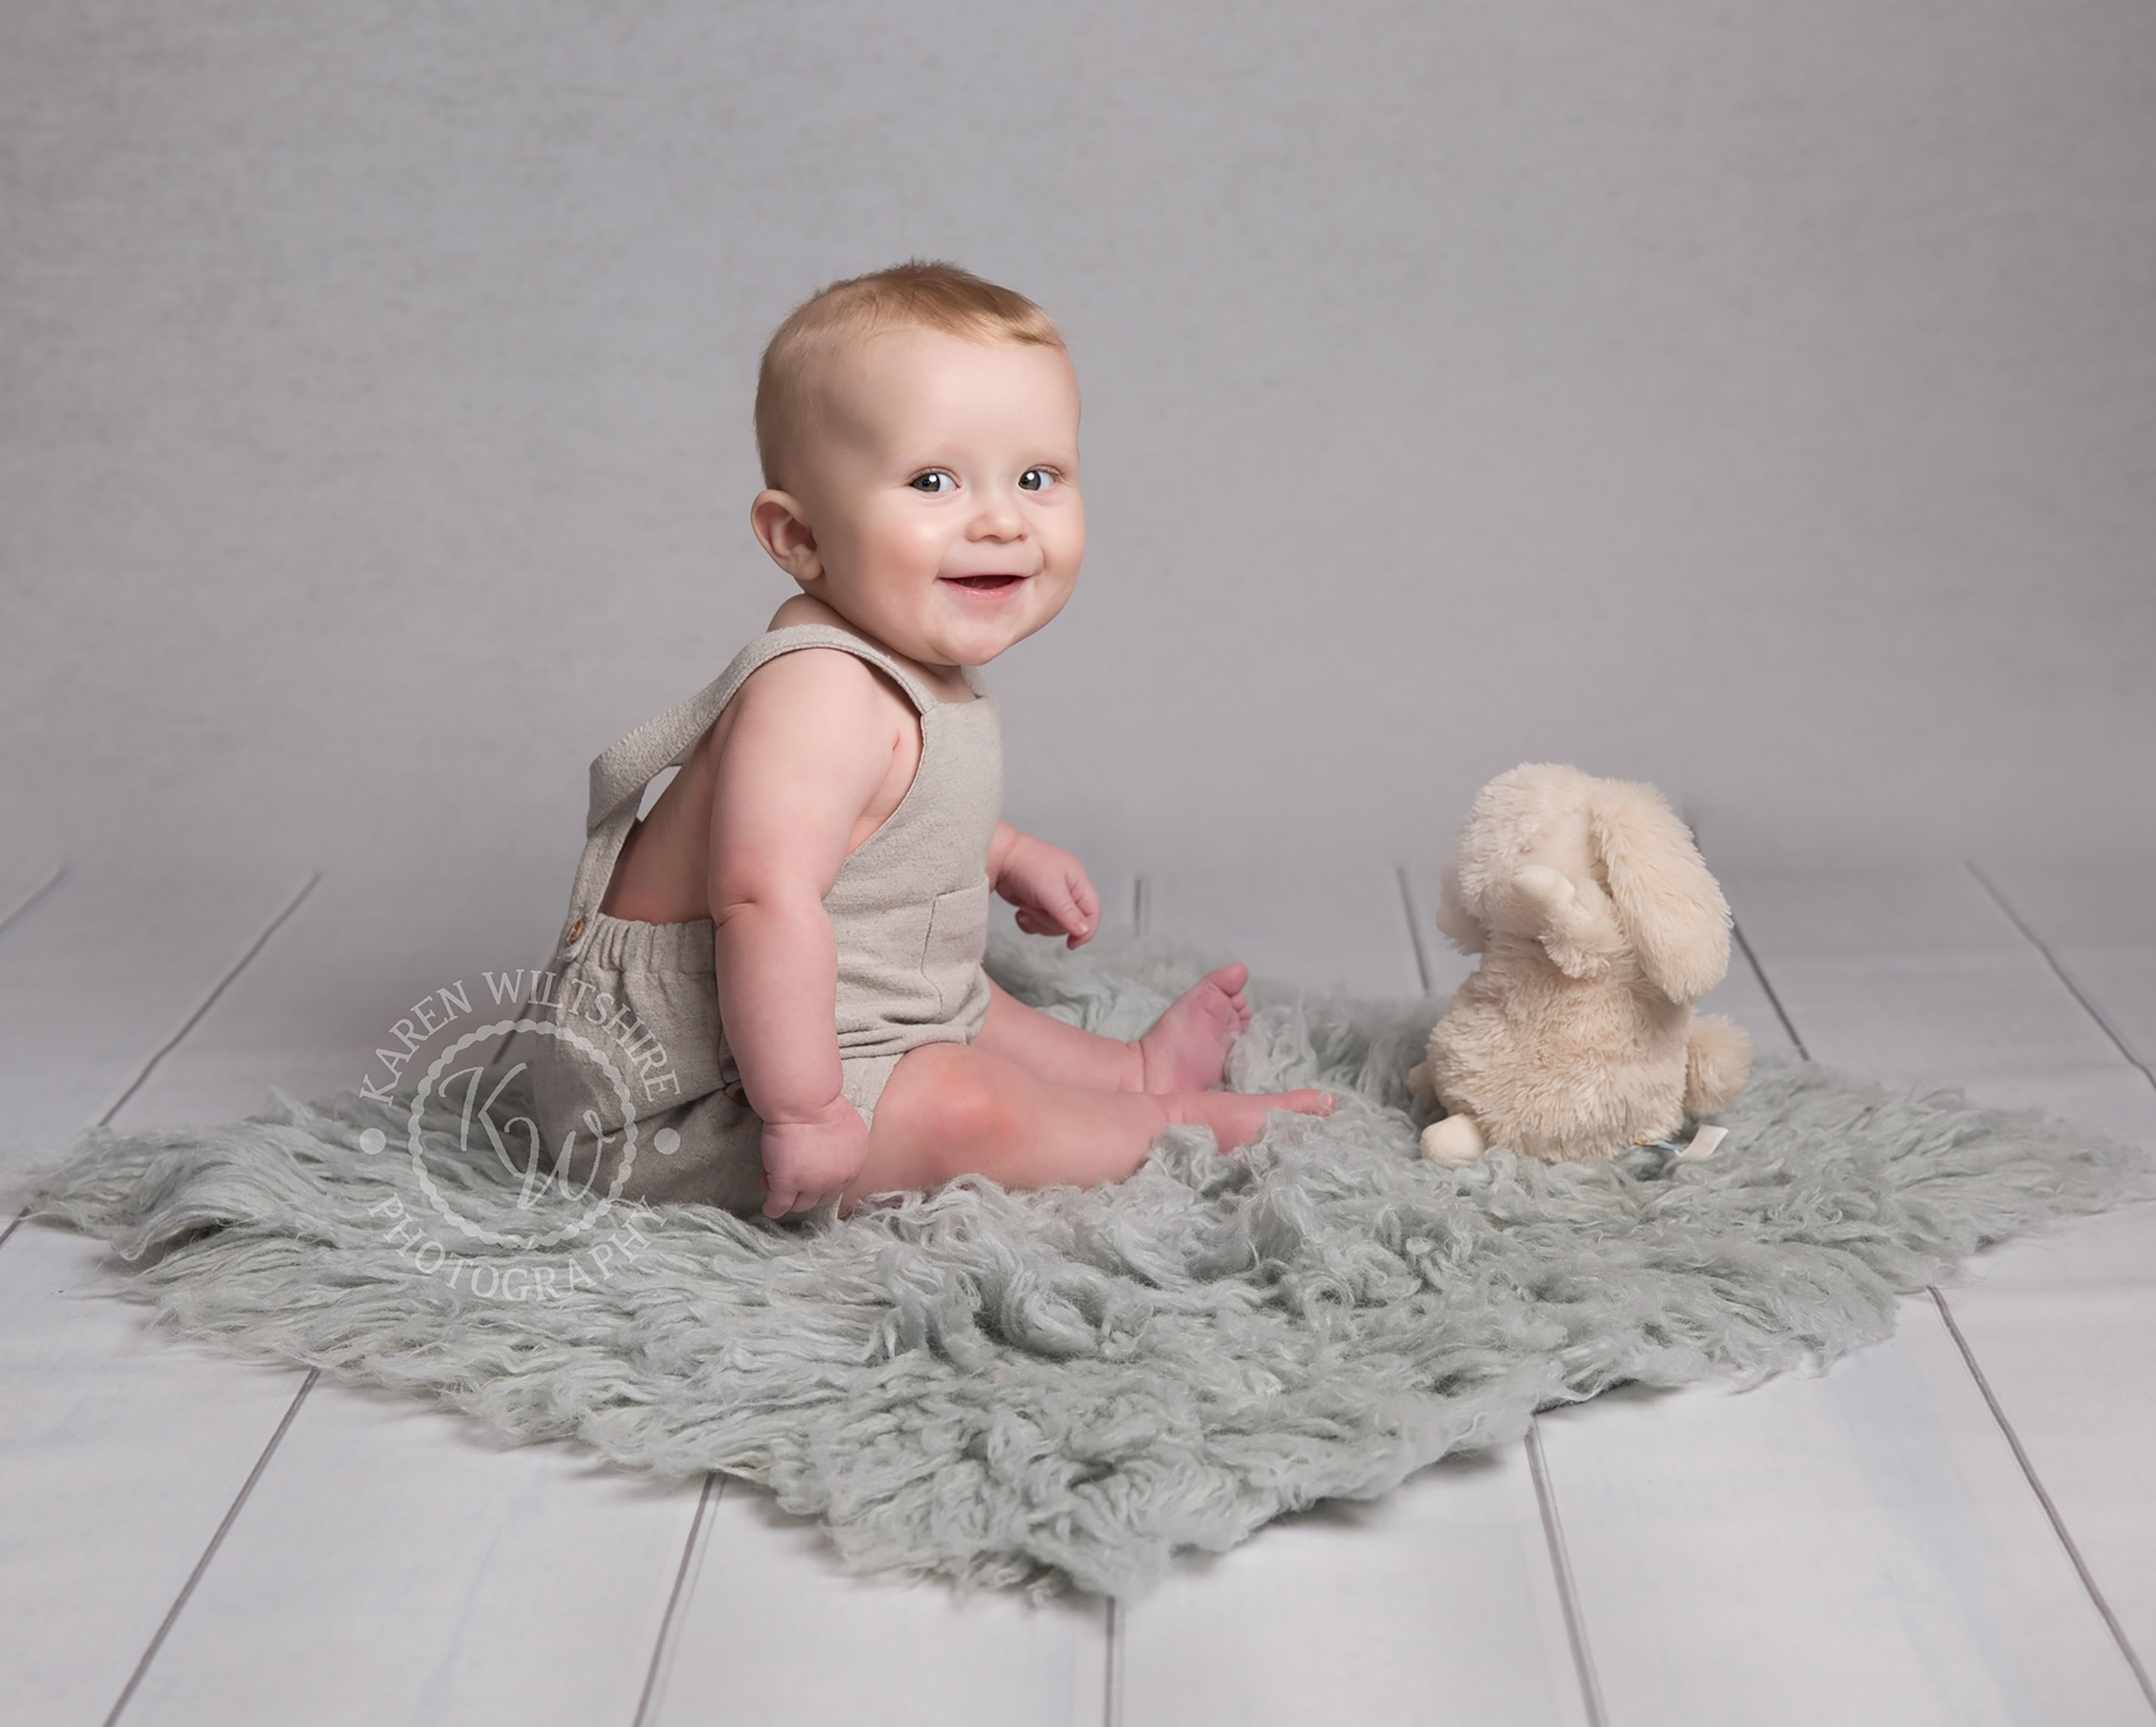 children & baby photography, Bunny toy and sitting baby playing